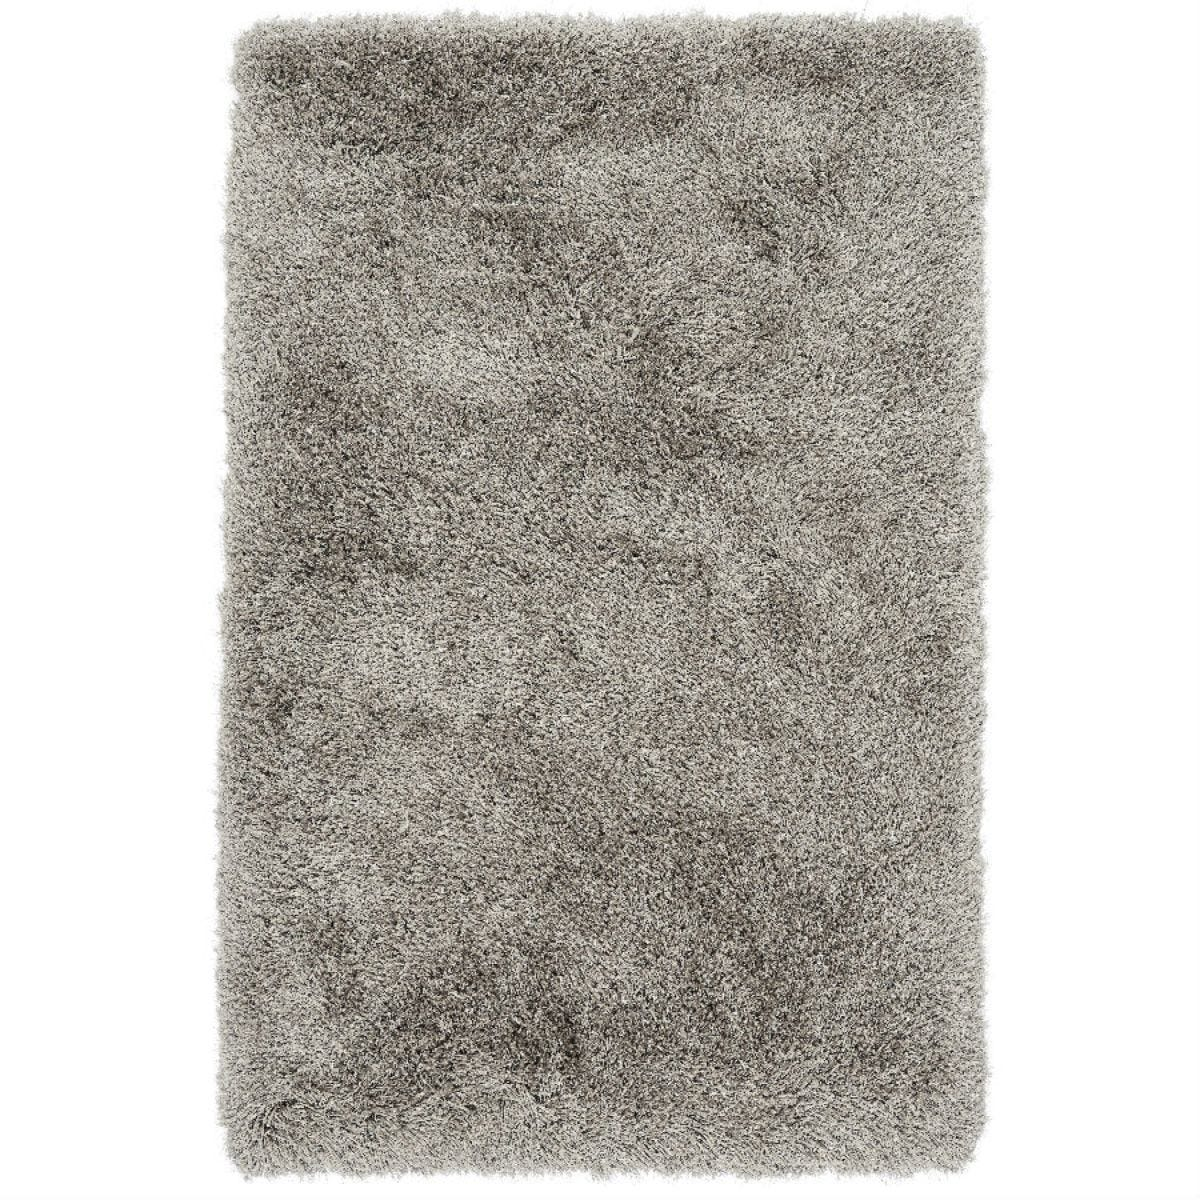 Asiatic Cascade Rug, 230 x 160cm - Taupe